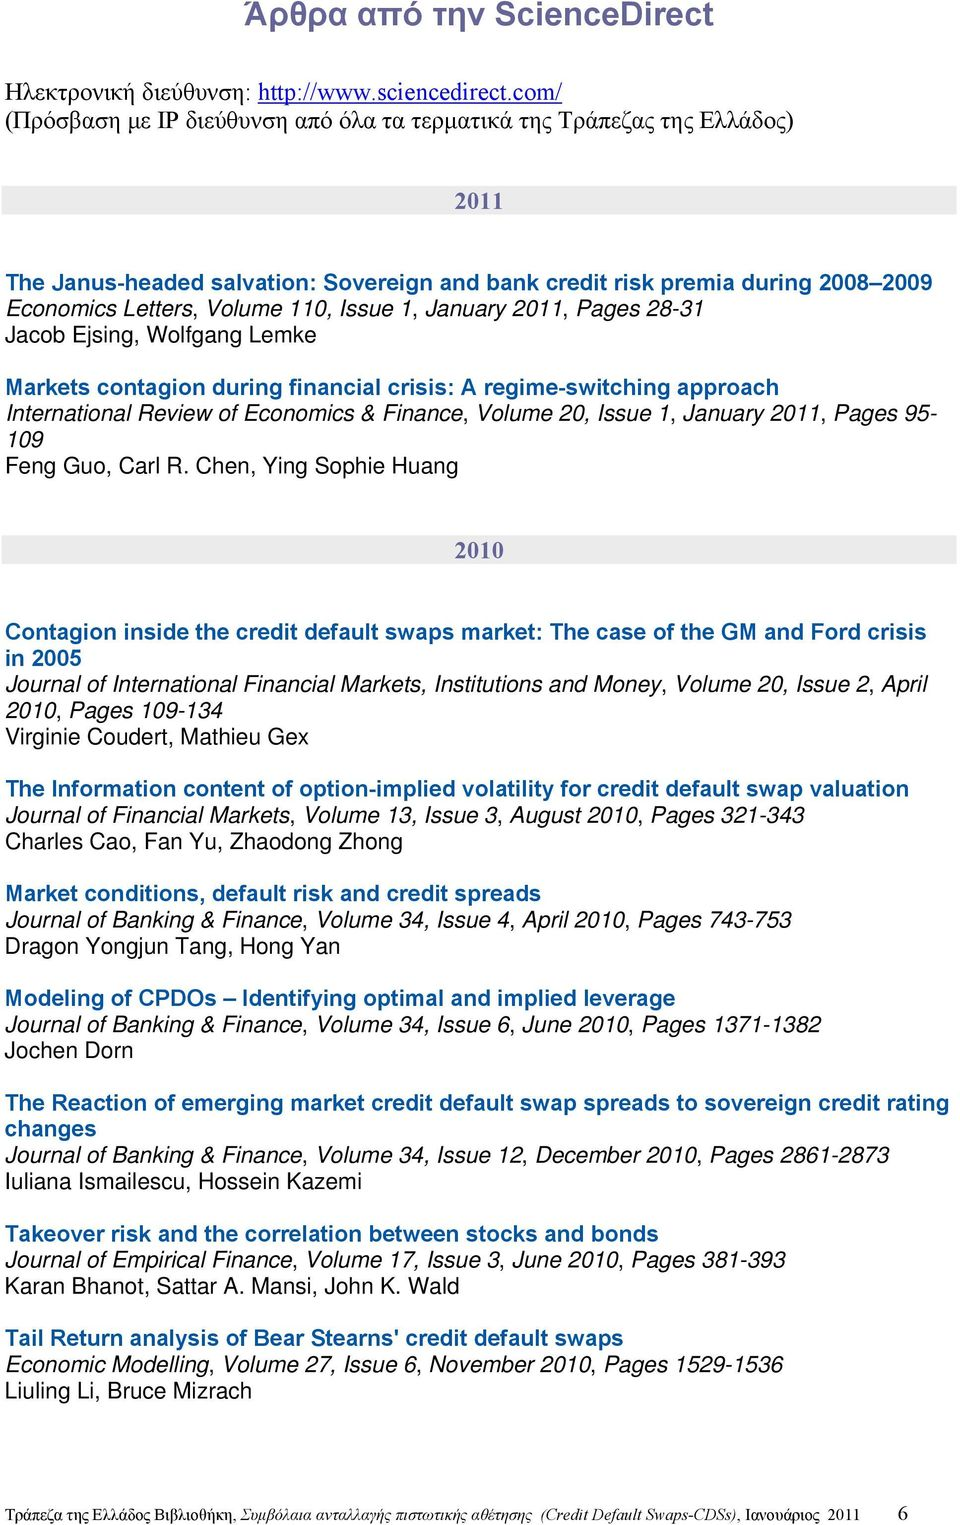 Issue 1, January 2011, Pages 28-31 Jacob Ejsing, Wolfgang Lemke Markets contagion during financial crisis: A regime-switching approach International Review of Economics & Finance, Volume 20, Issue 1,